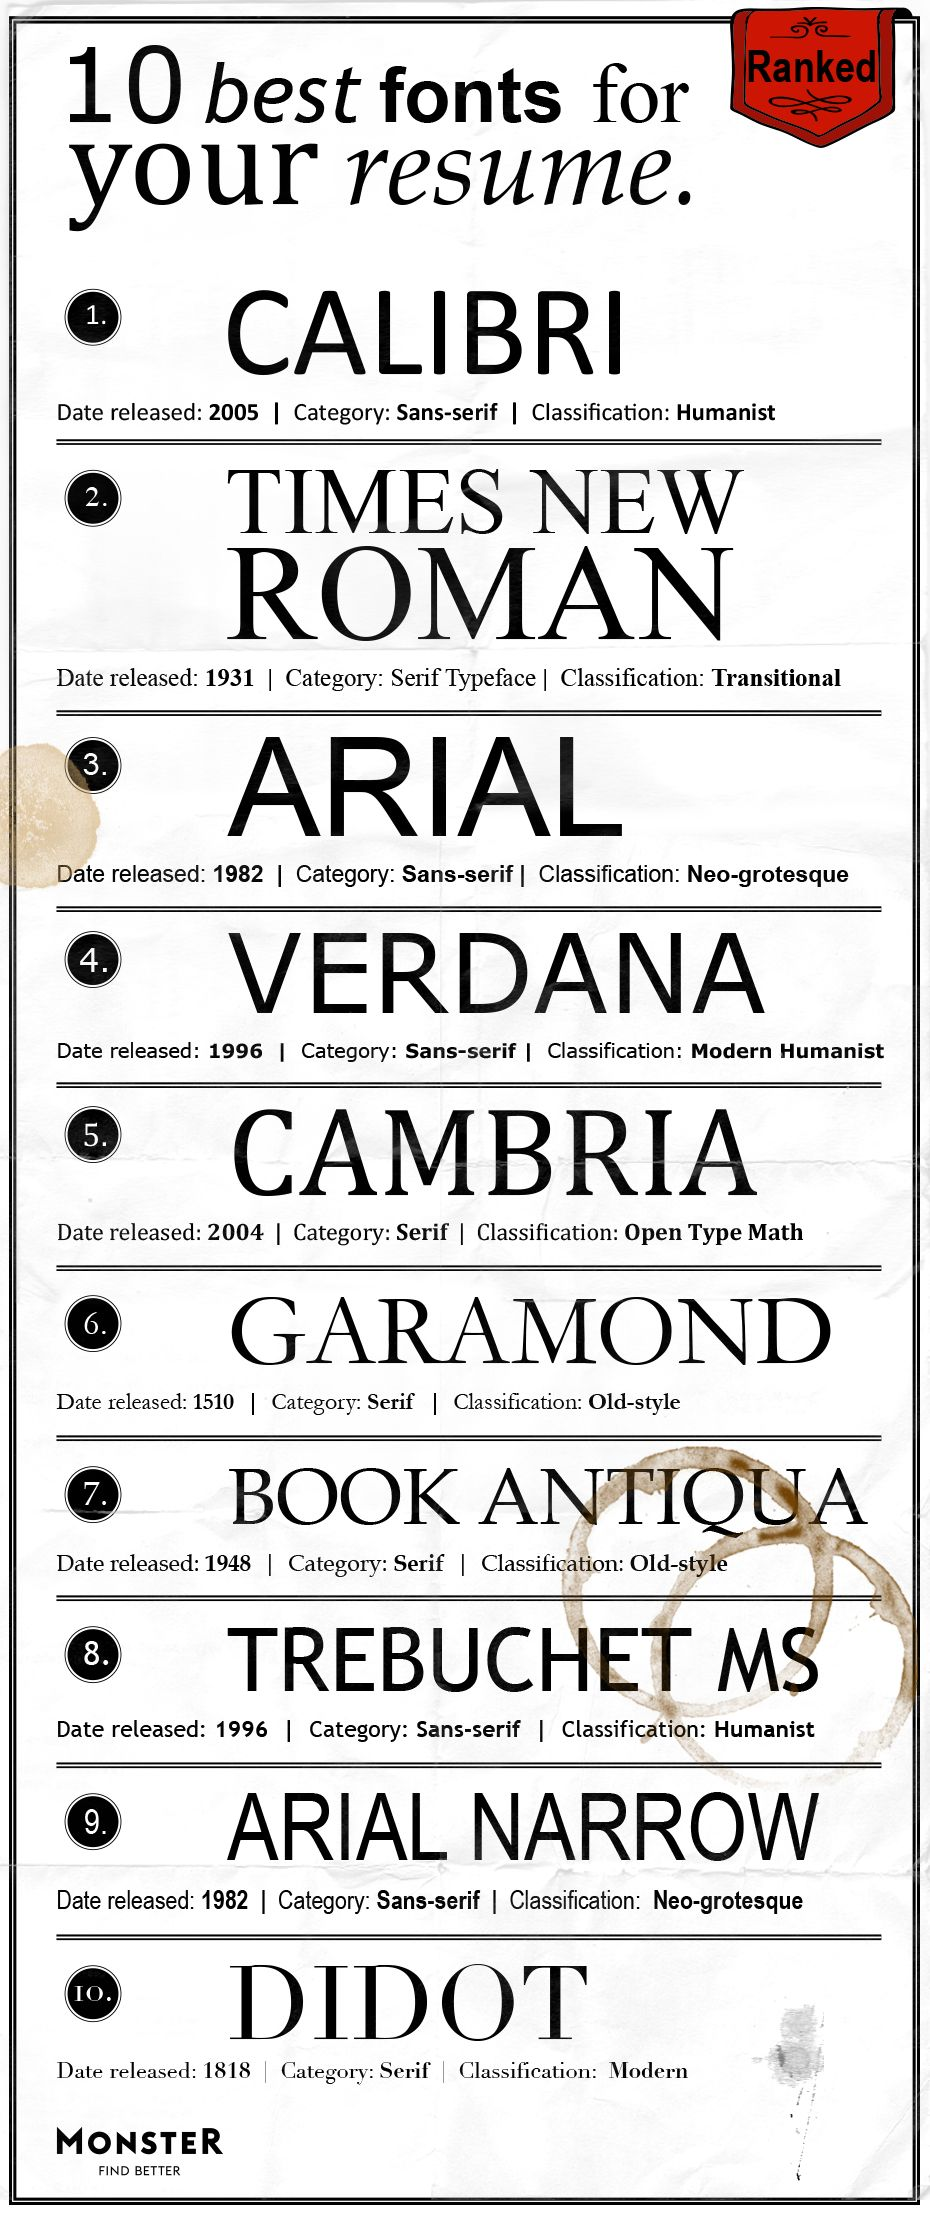 Best Fonts for Your Resume | Carta de presentación, Entrevista y Eres tú